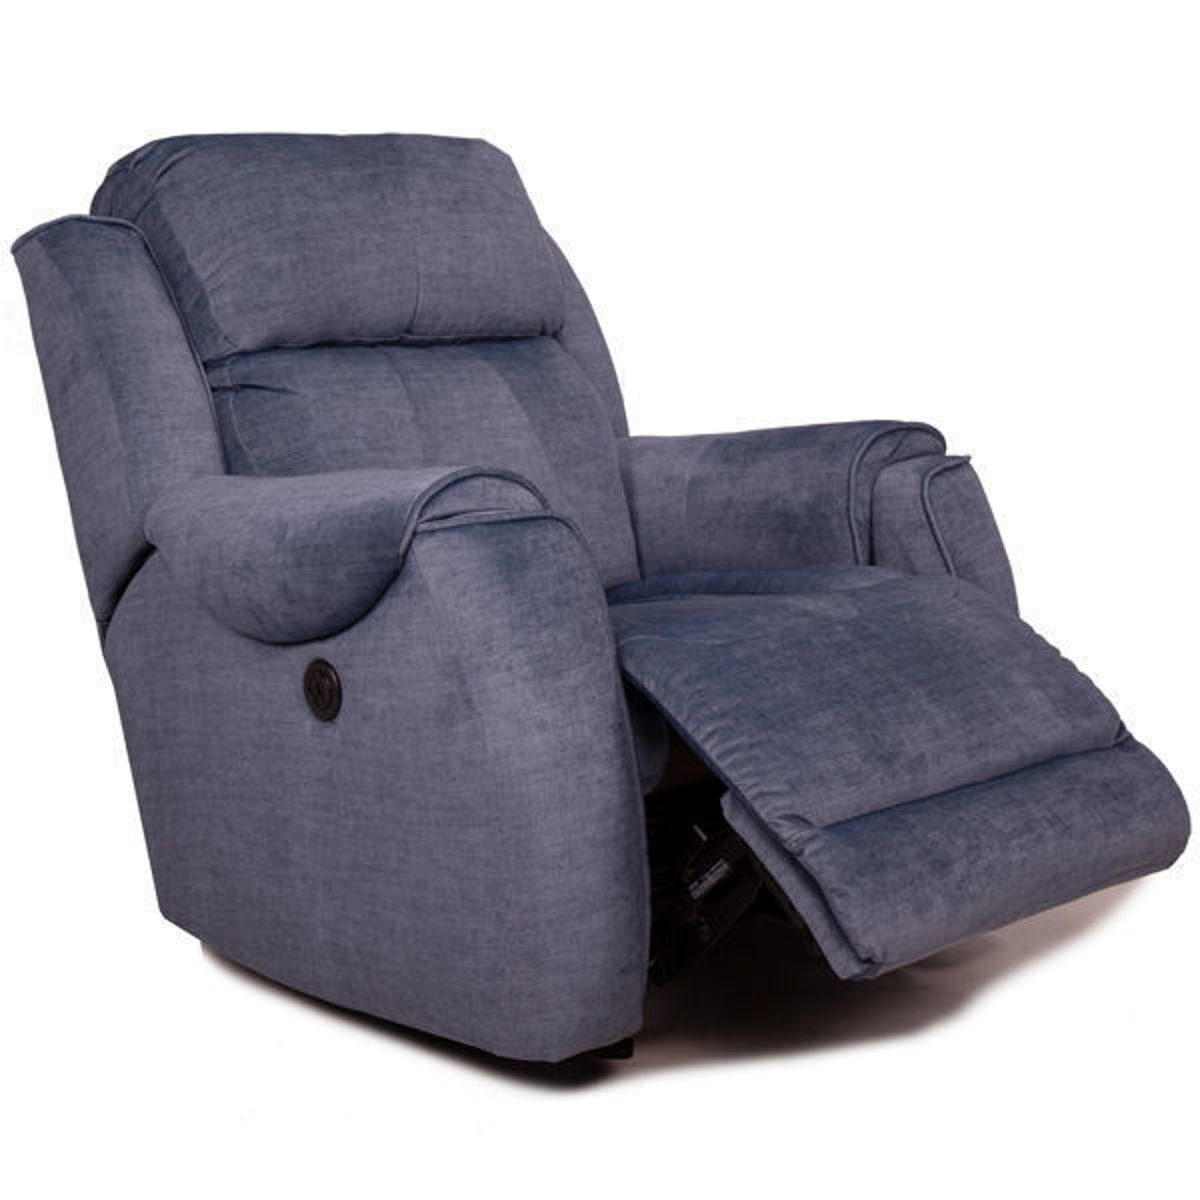 Picture of LIVINGSTON RECLINER W/ POWER PLUS